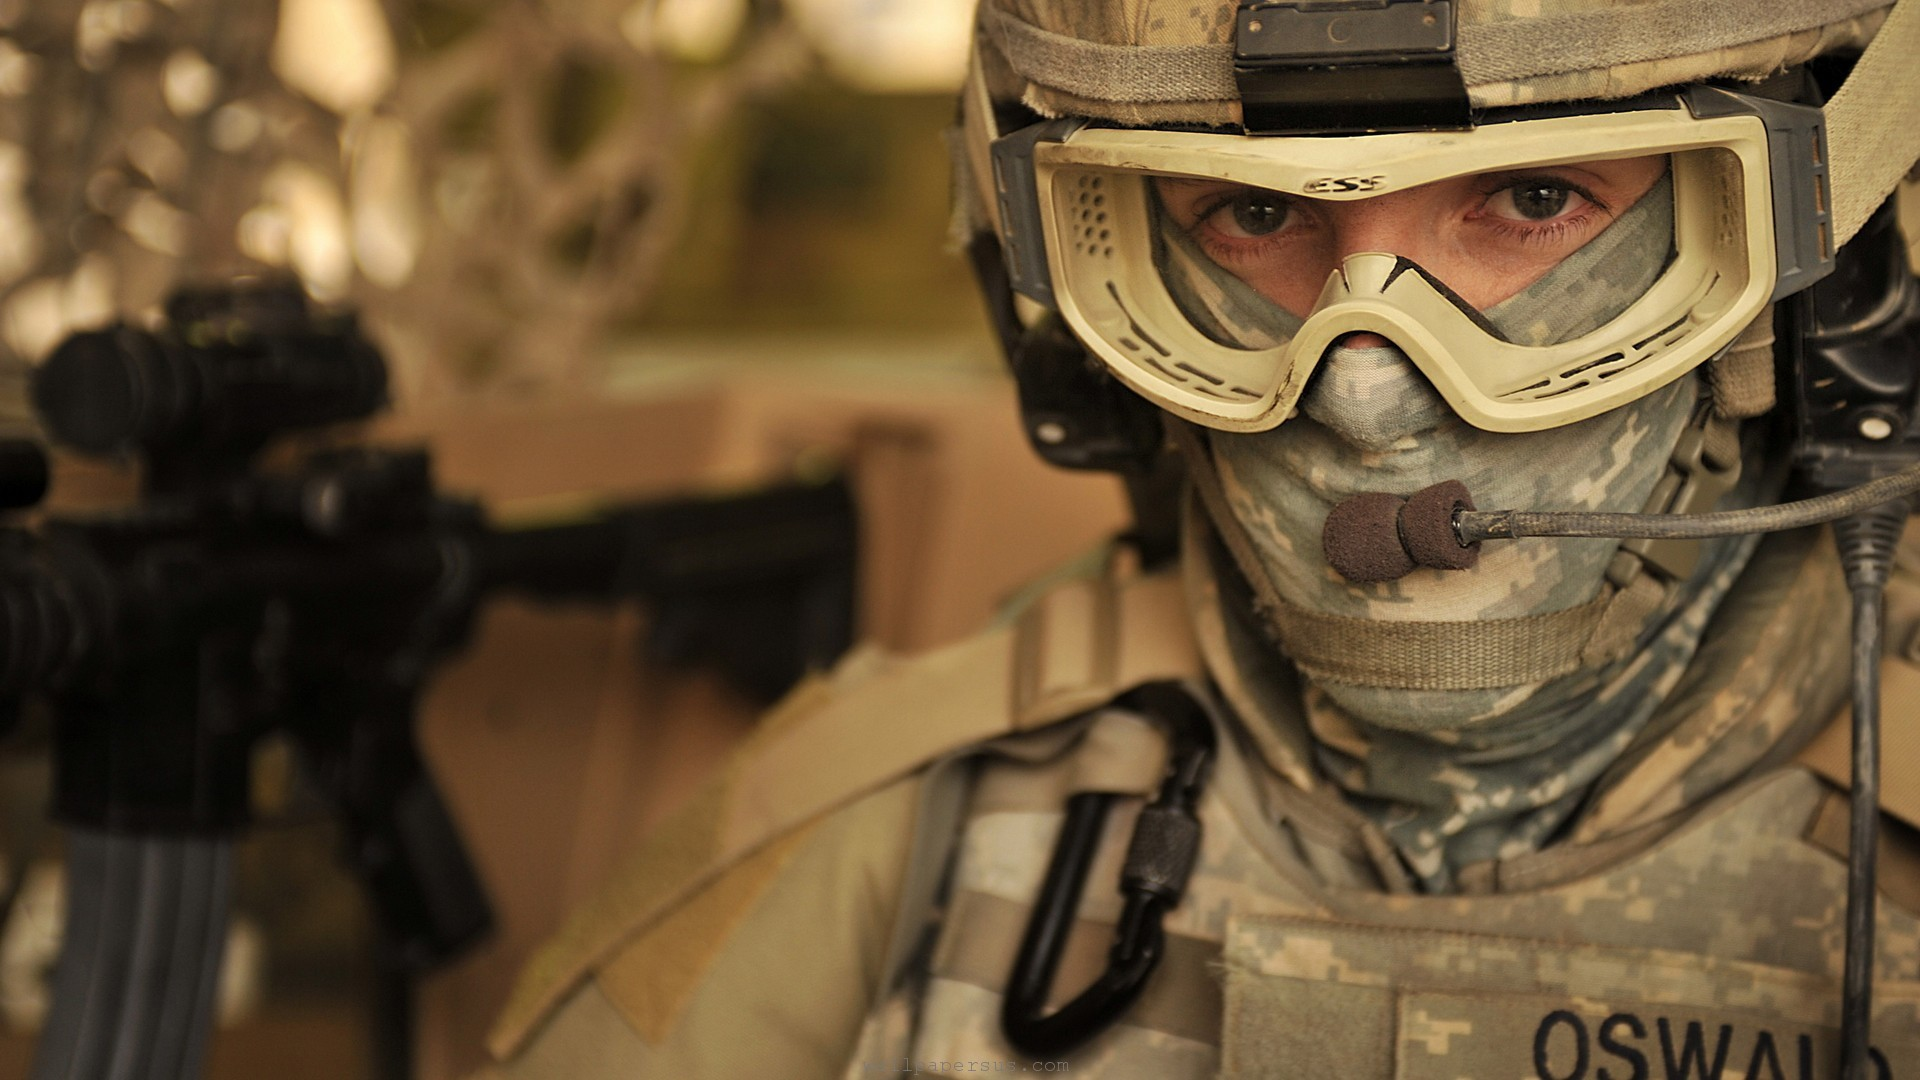 Us army special forces wallpaper 70 images 3000x2068 achieve your defence career goals with our training fitness programs we offer to all kind of defence forces including army police voltagebd Image collections